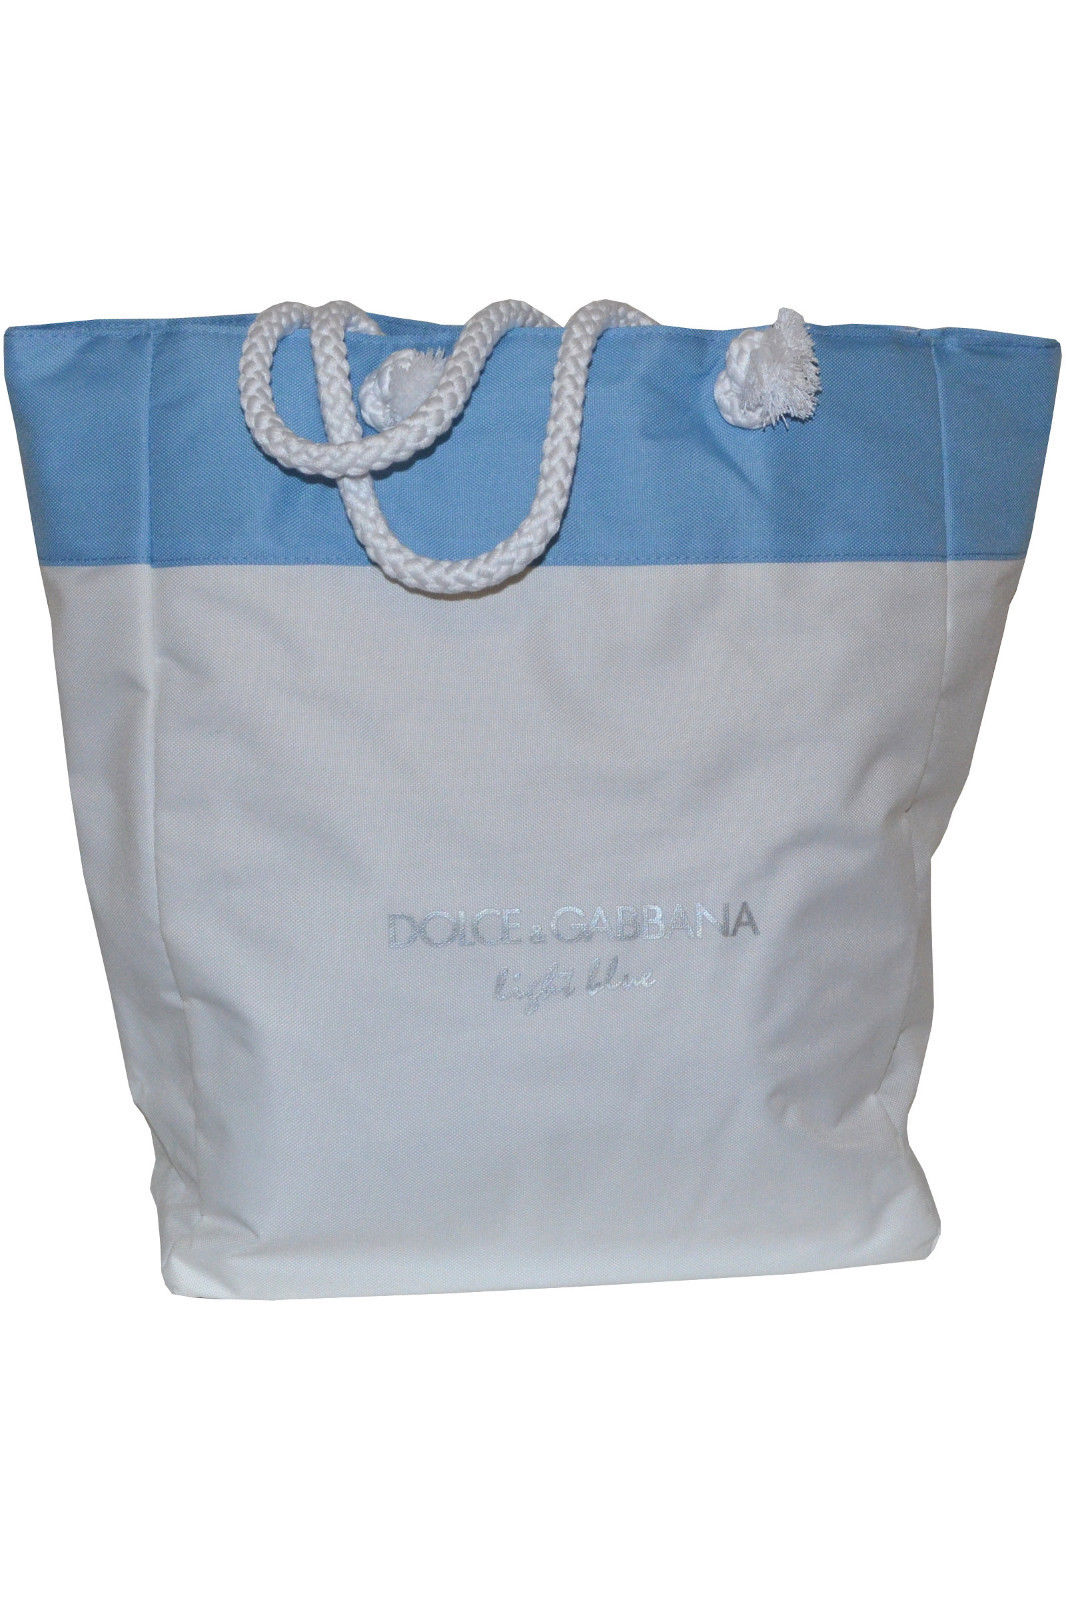 Dolce   Gabbana Light Blue Beach Bag is the perfect summer accessory. This  large sized shoulder bag comes with beautiful light blue detailing  including two ... bfe721f2389dd